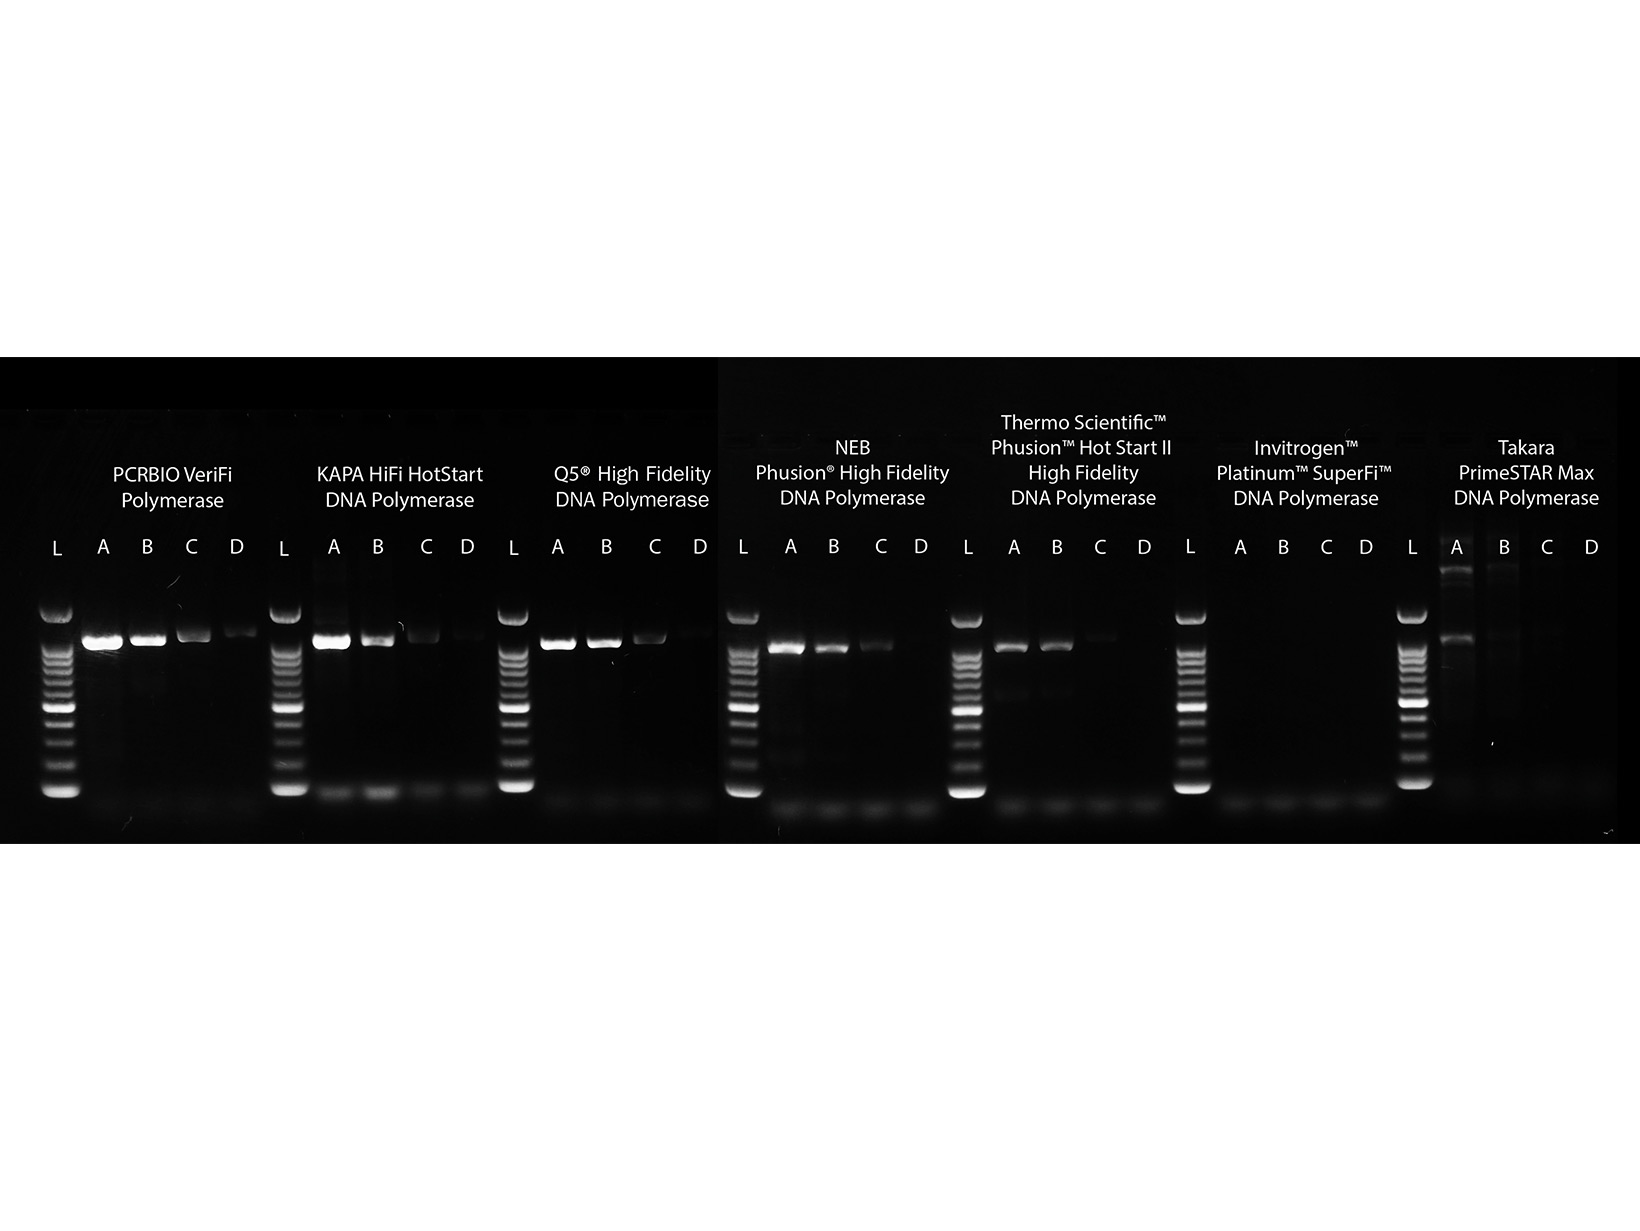 Gel image comparing the sensitivity of PCRBIO VeriFi Polymerase compared to leading competitors